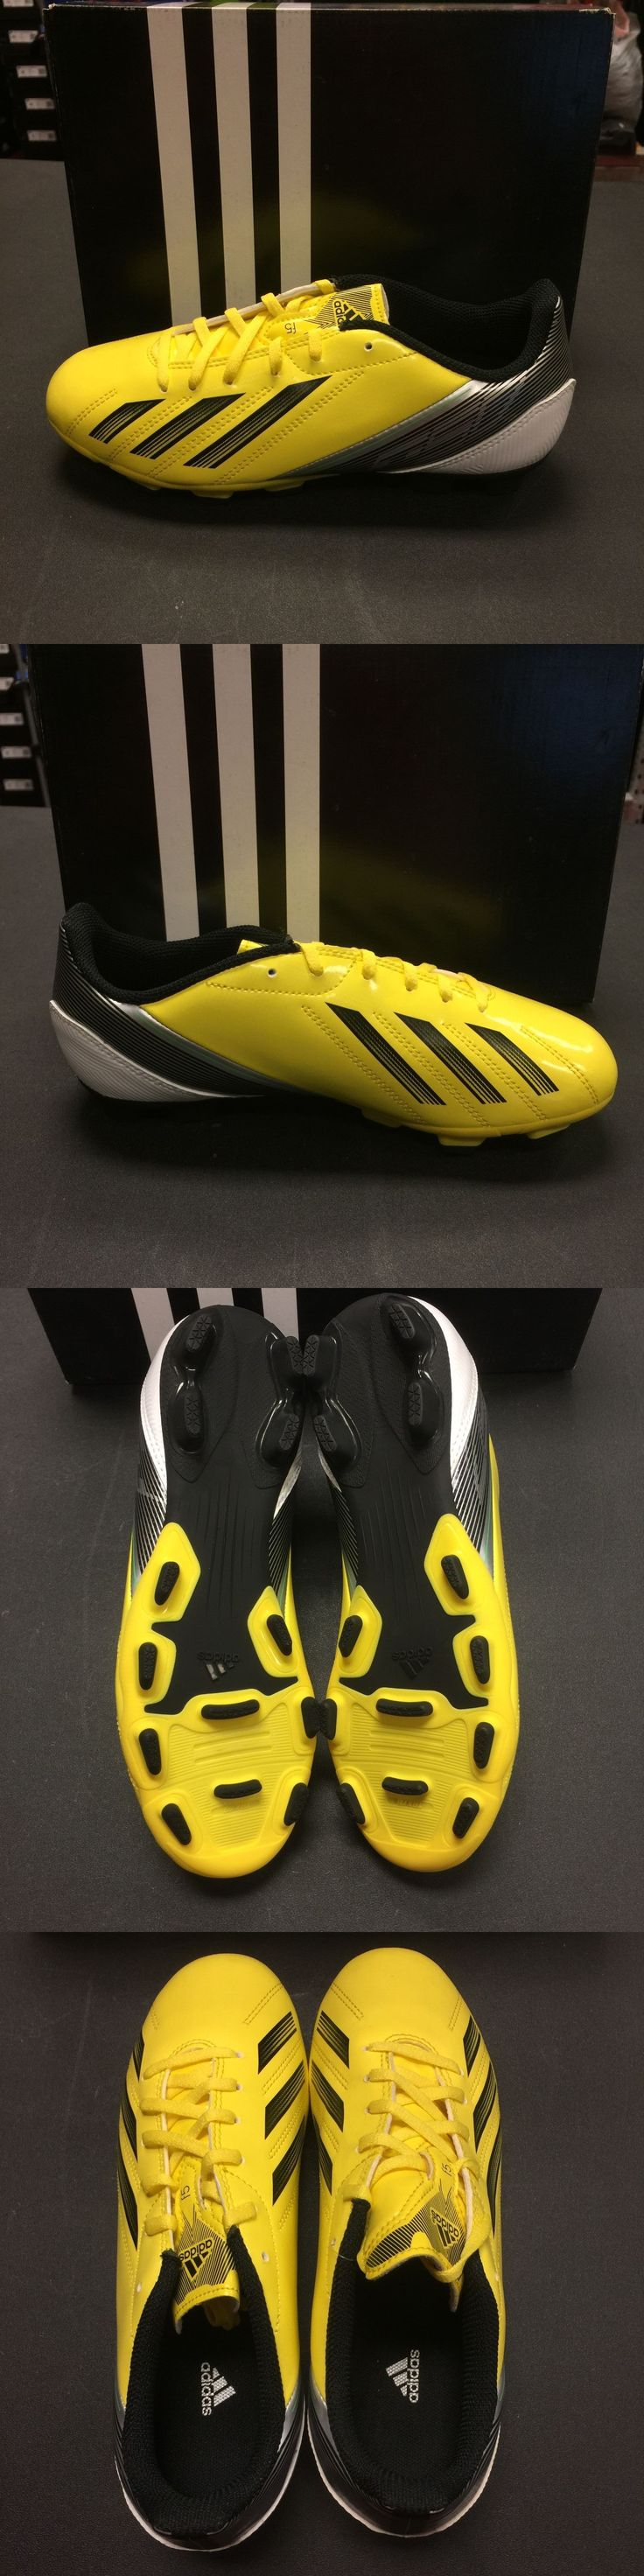 Youth 159177: Adidas F5 Trx Fg J Messi Kids Soccer Cleats Barcelona -> BUY IT NOW ONLY: $35 on eBay!